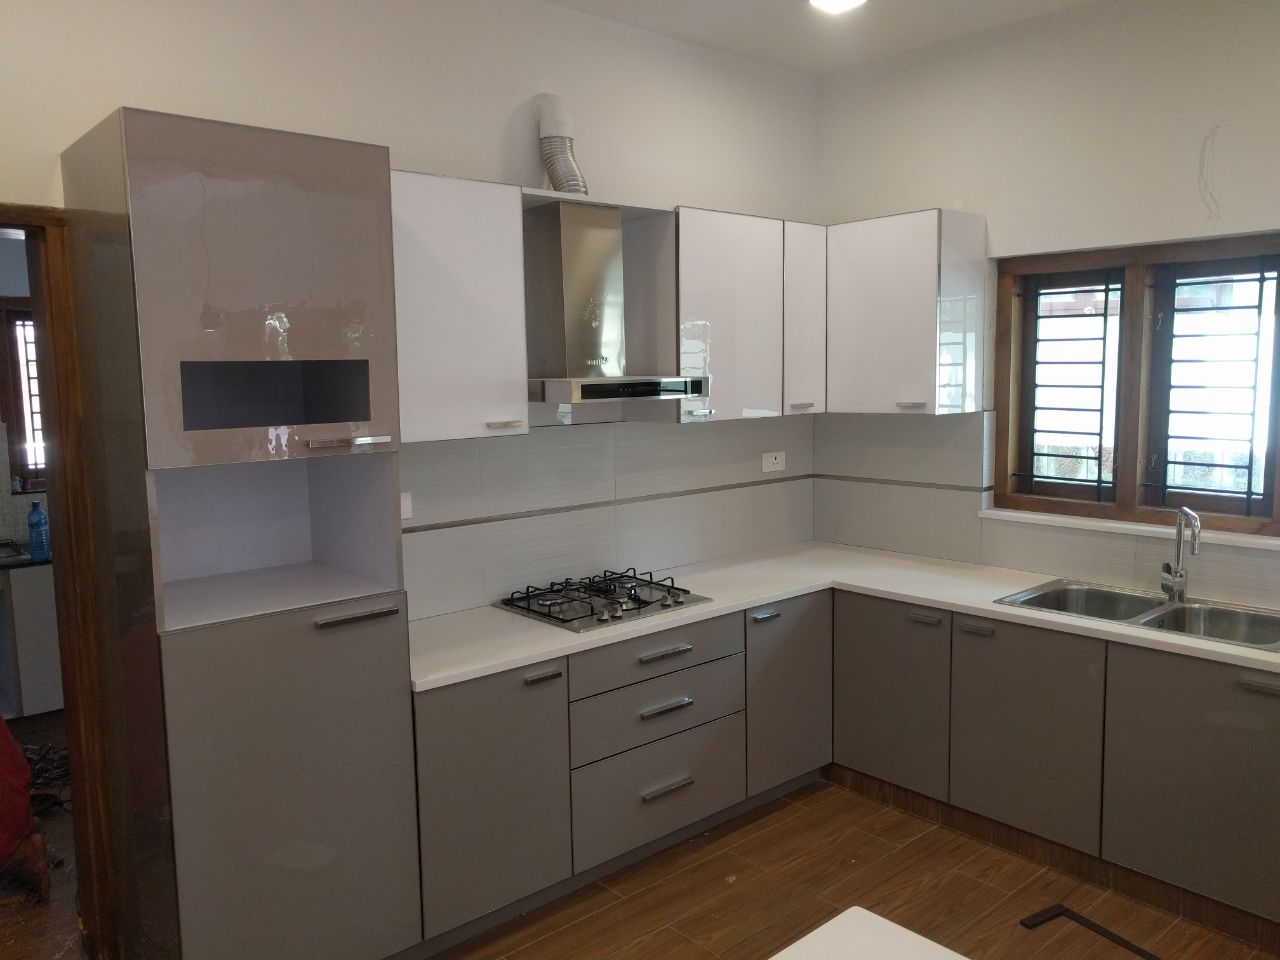 White And Grey Modular Kitchen With L Shaped Counter By Designers5  Interiors Bangalore Modular Kitchen